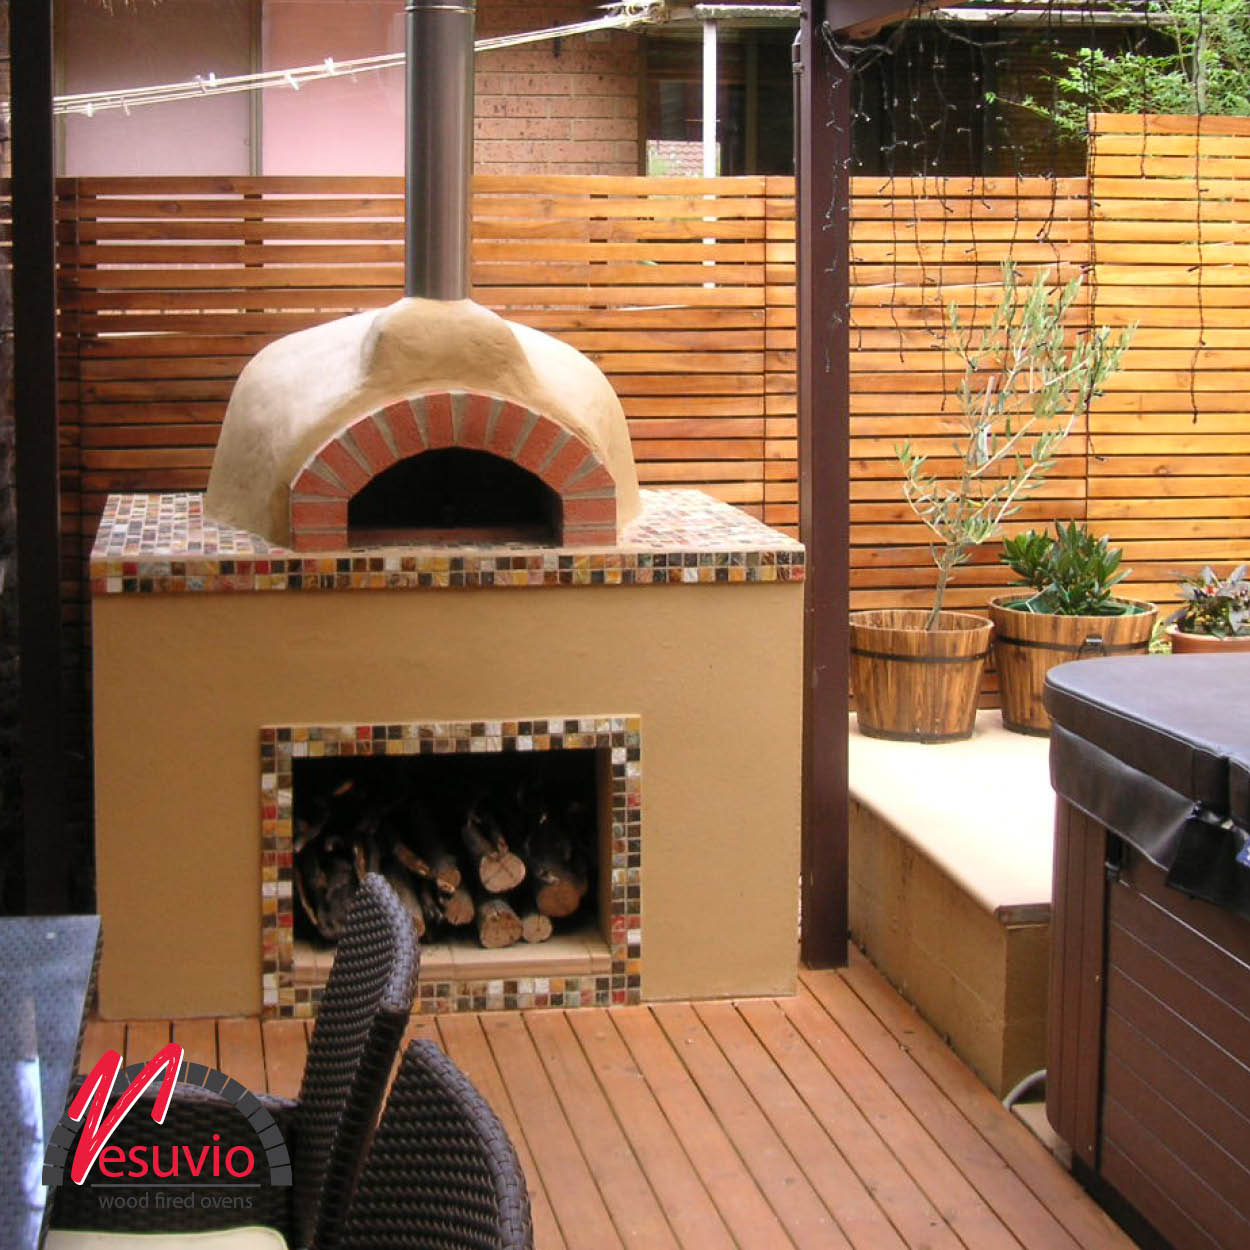 Residential Wood Fired Ovens Gallery Vesuvio Wood Fired Ovensvesuvio Wood Fired Ovens